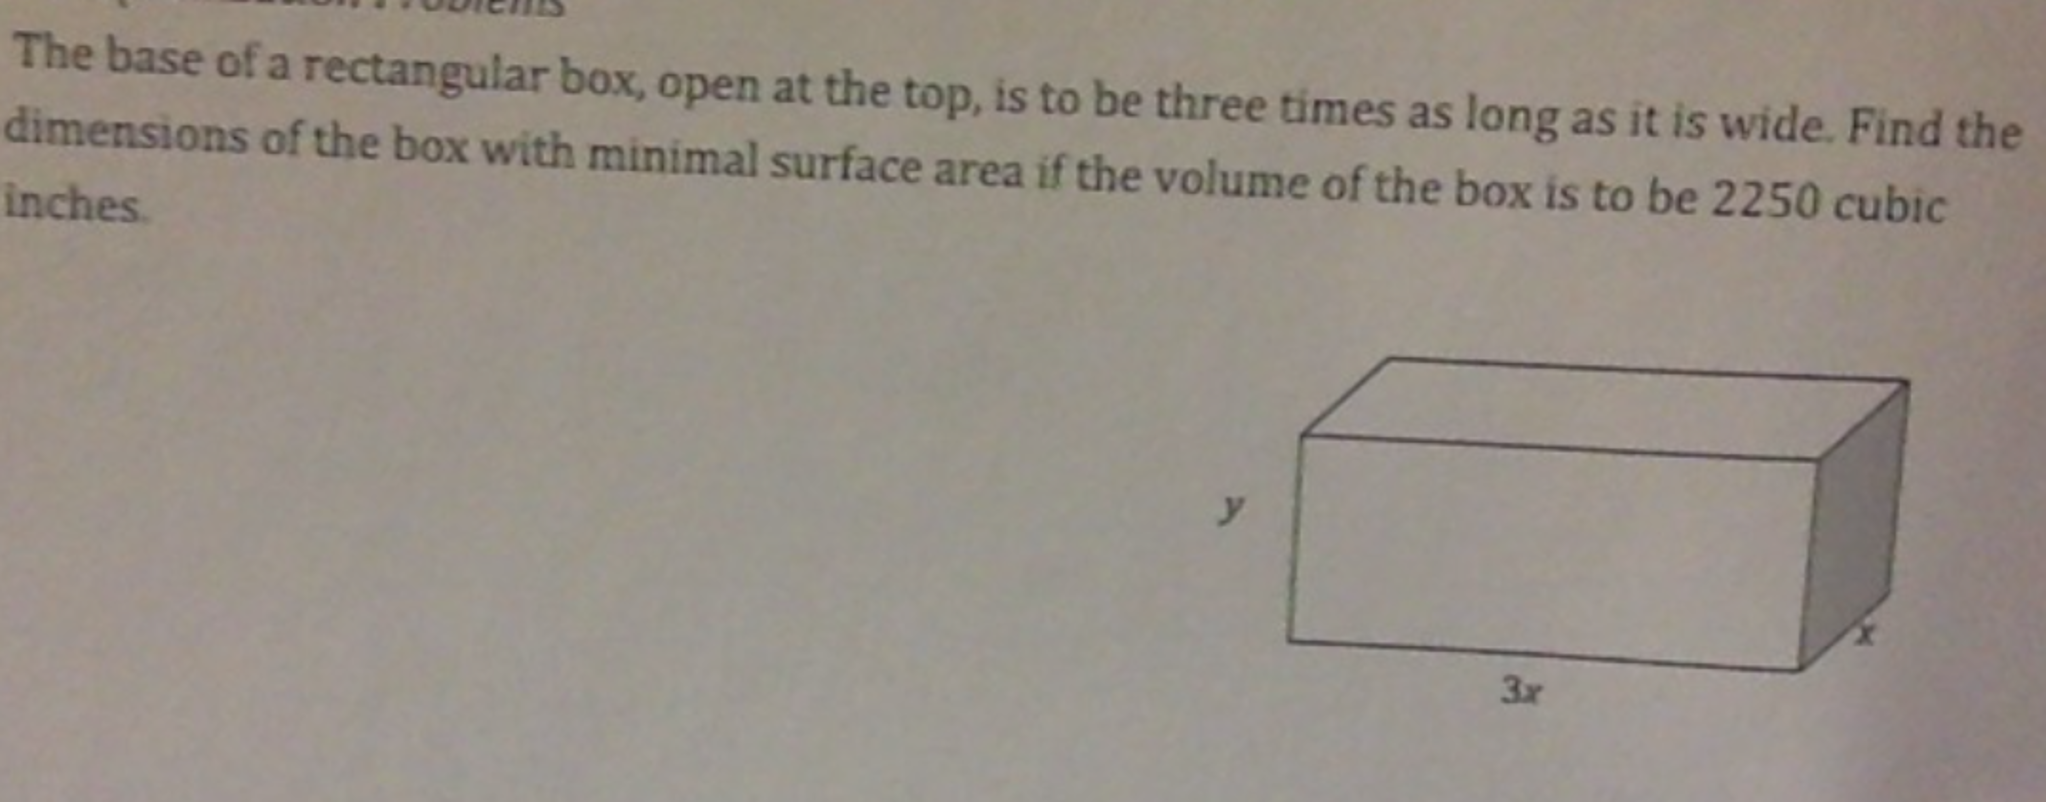 how to find volume of a rectangular box